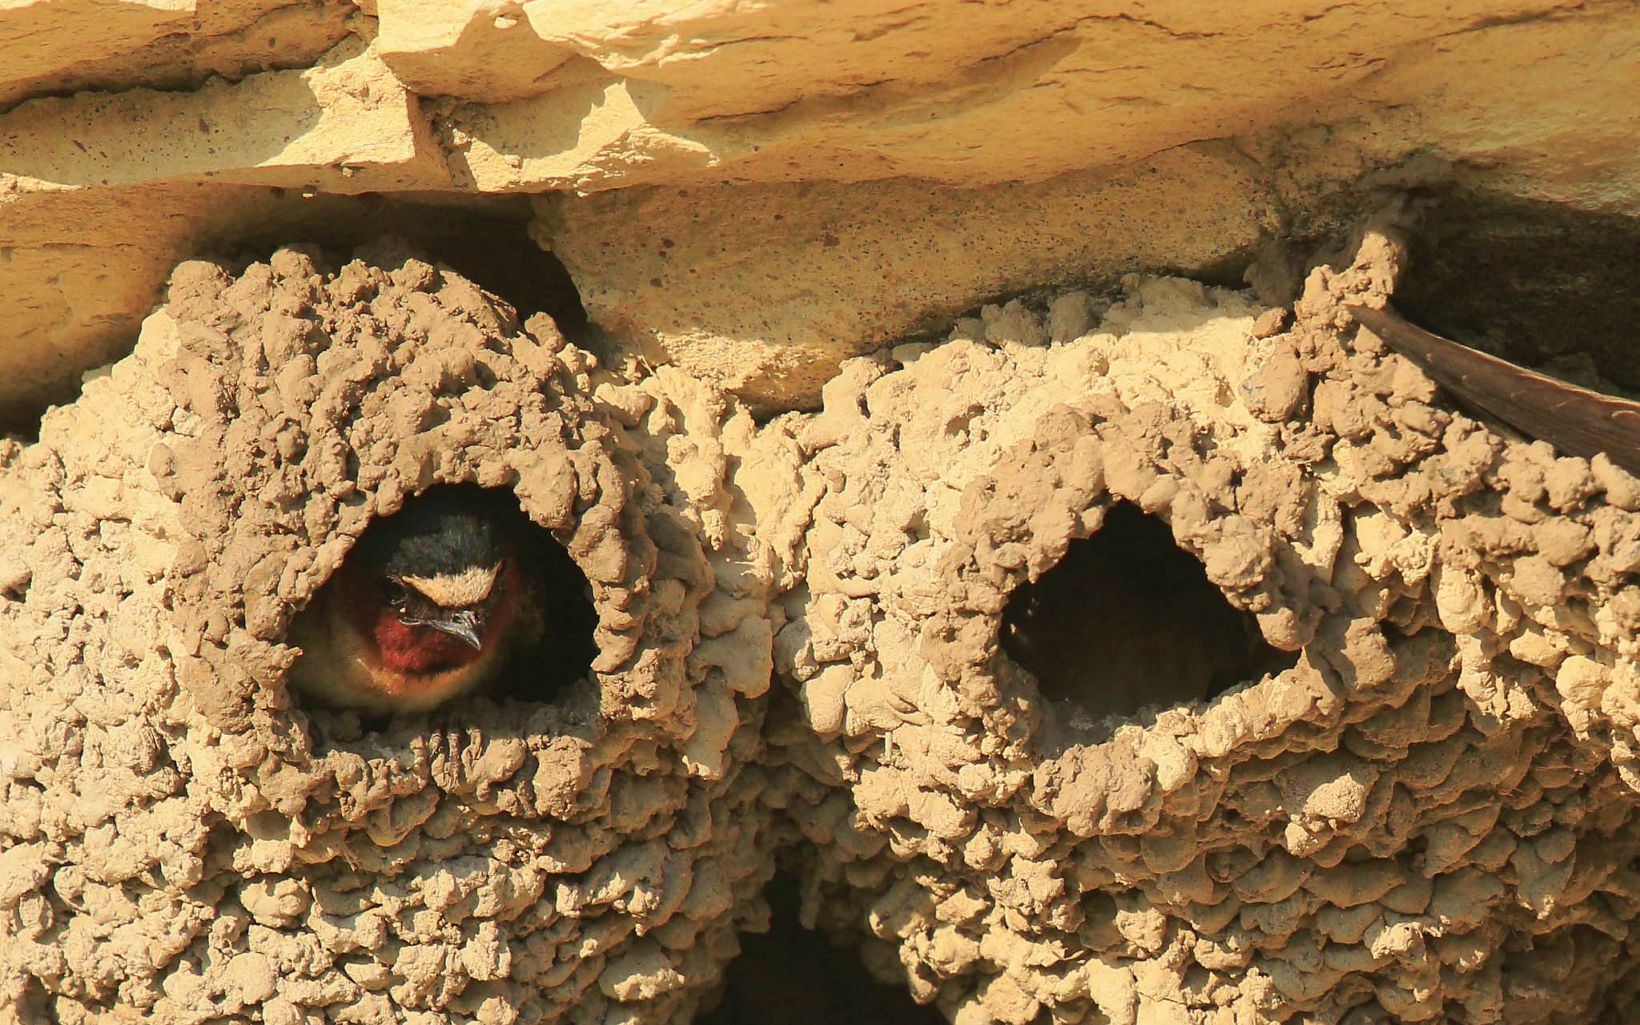 These mud nests are a common sight near the tops of rock formations in western Kansas.